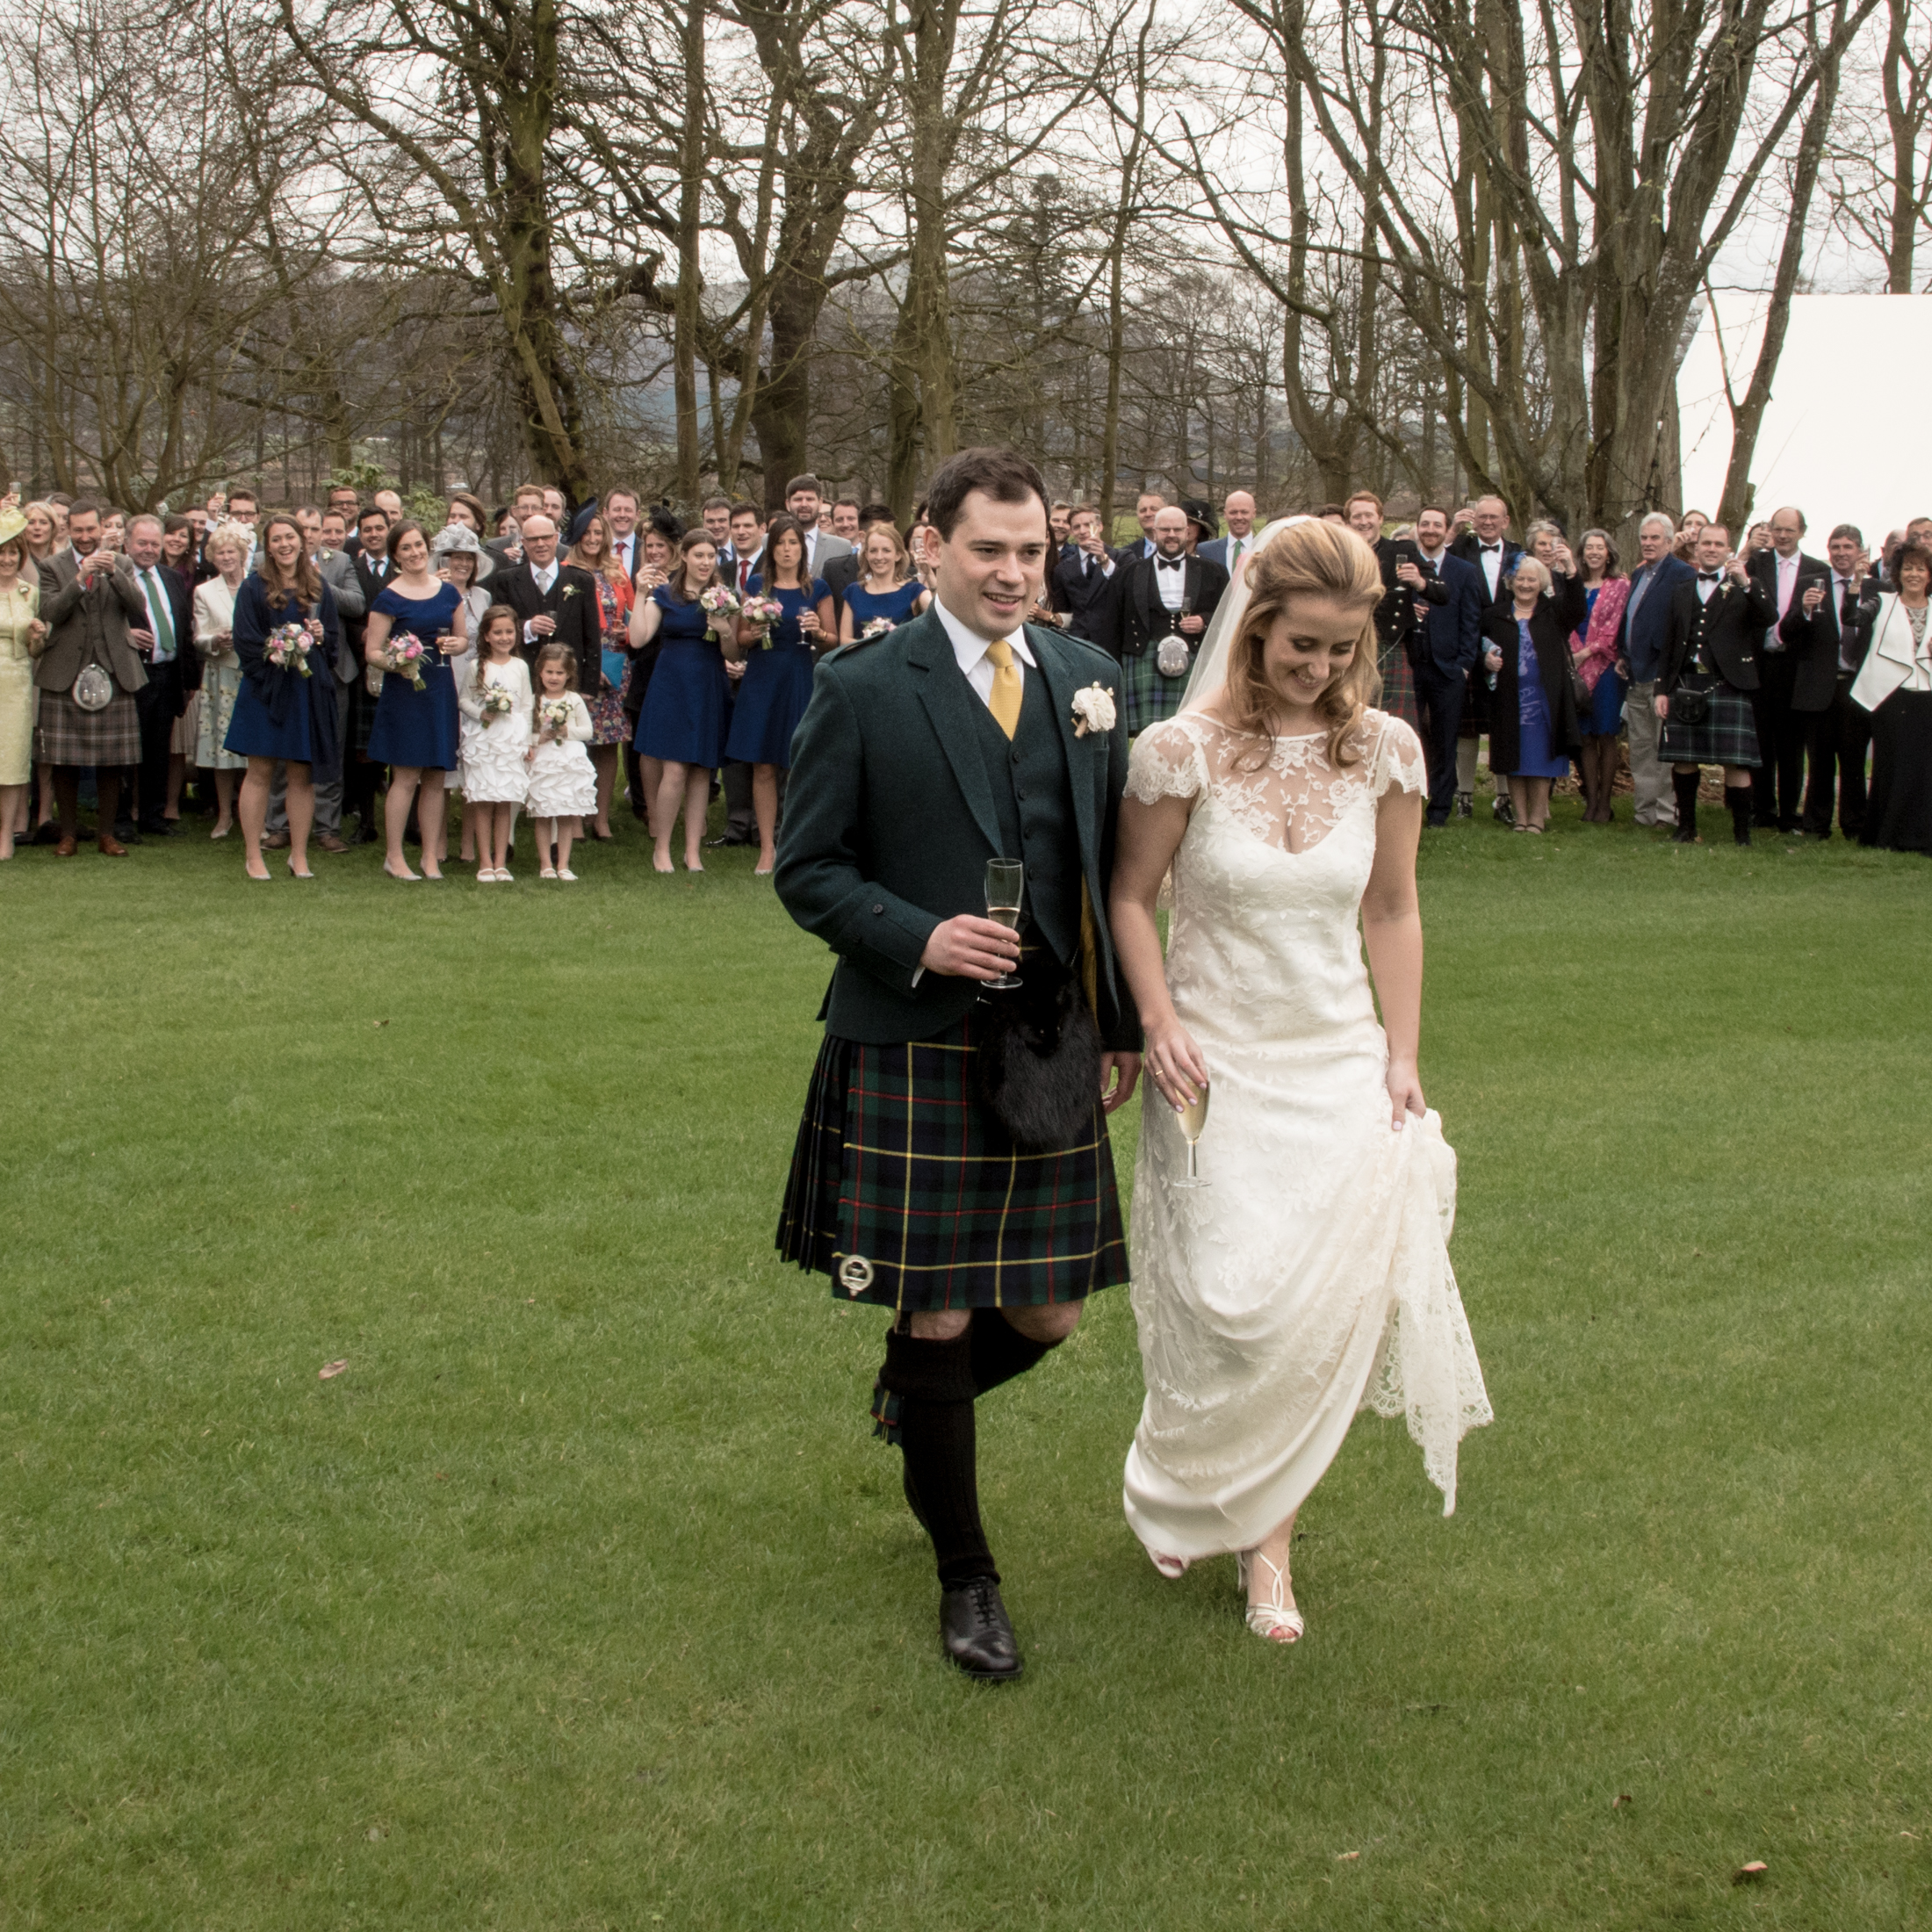 2016-04-02 SIONED AND NEIL FALKLAND MYRES CASTLE161712.jpg